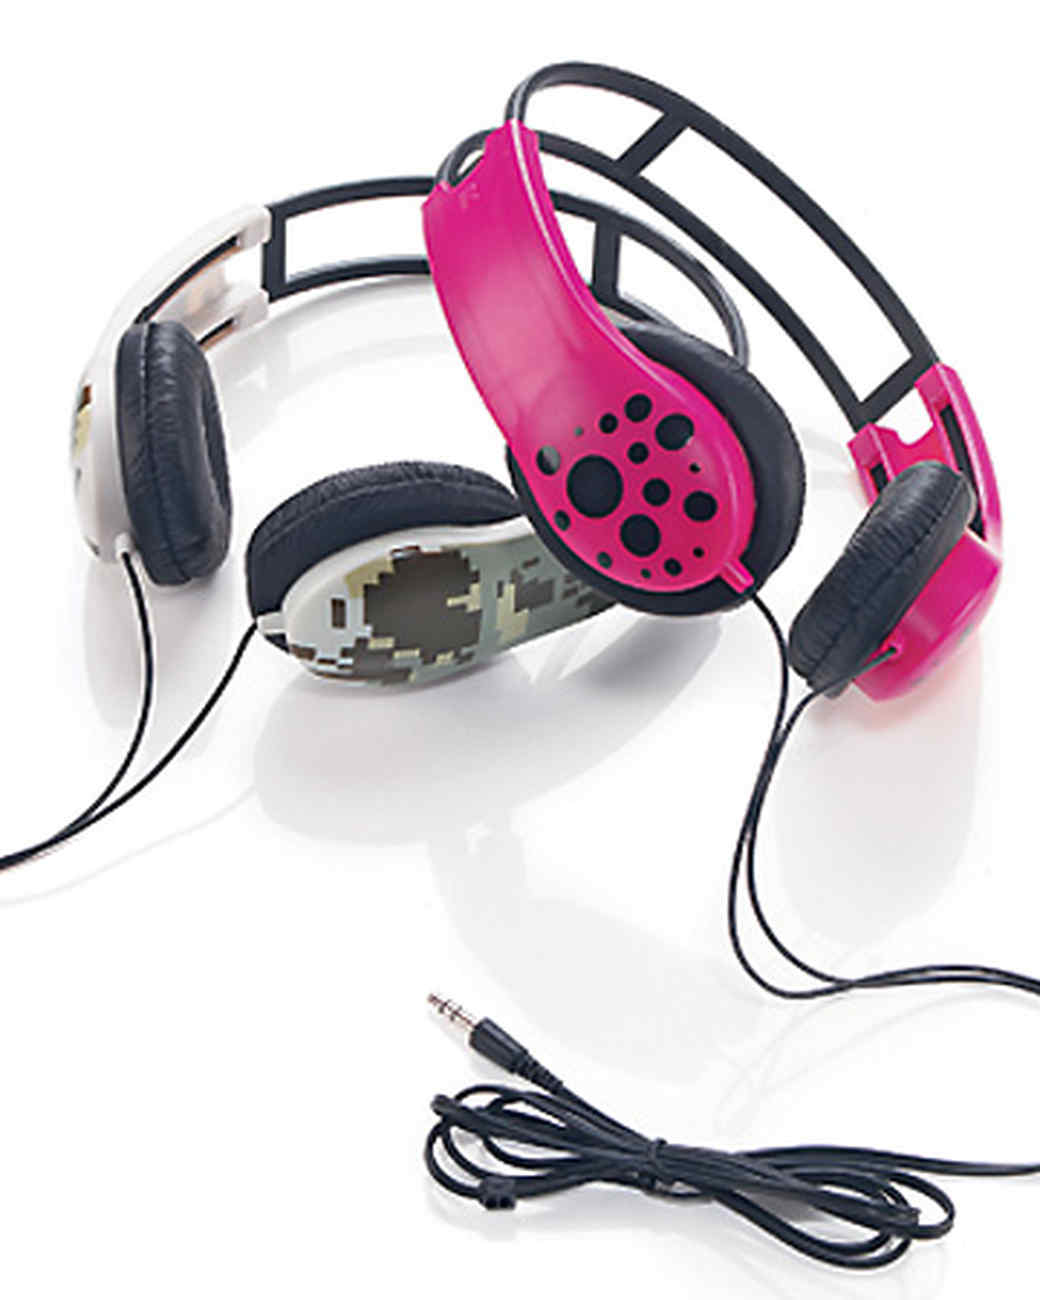 avon_headphones_7.jpg